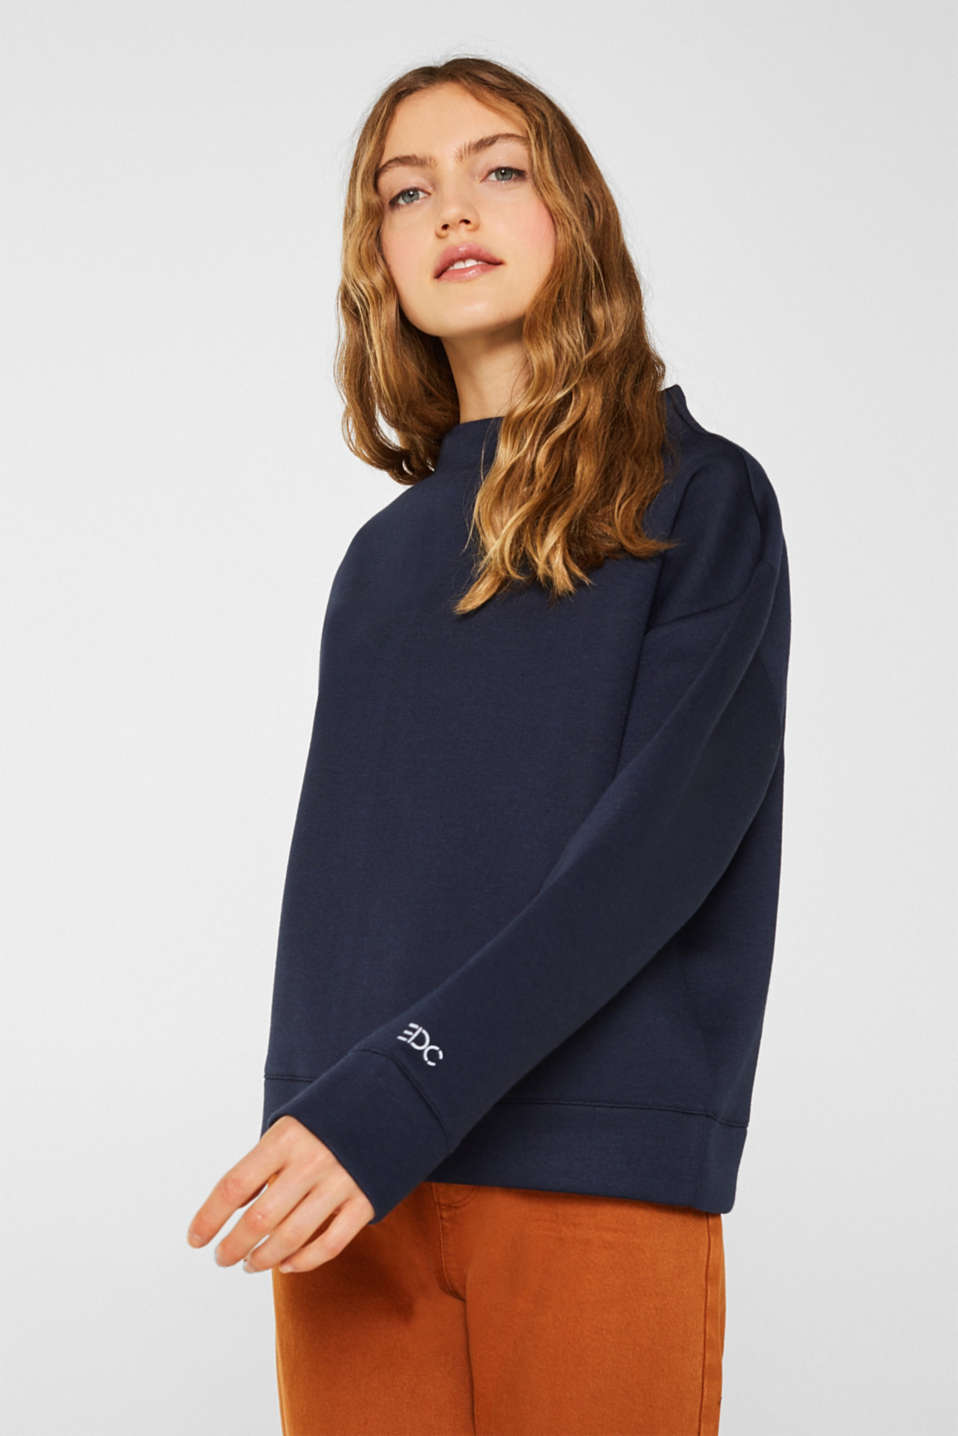 Compact sweatshirt with a stand-up collar, NAVY, detail image number 0